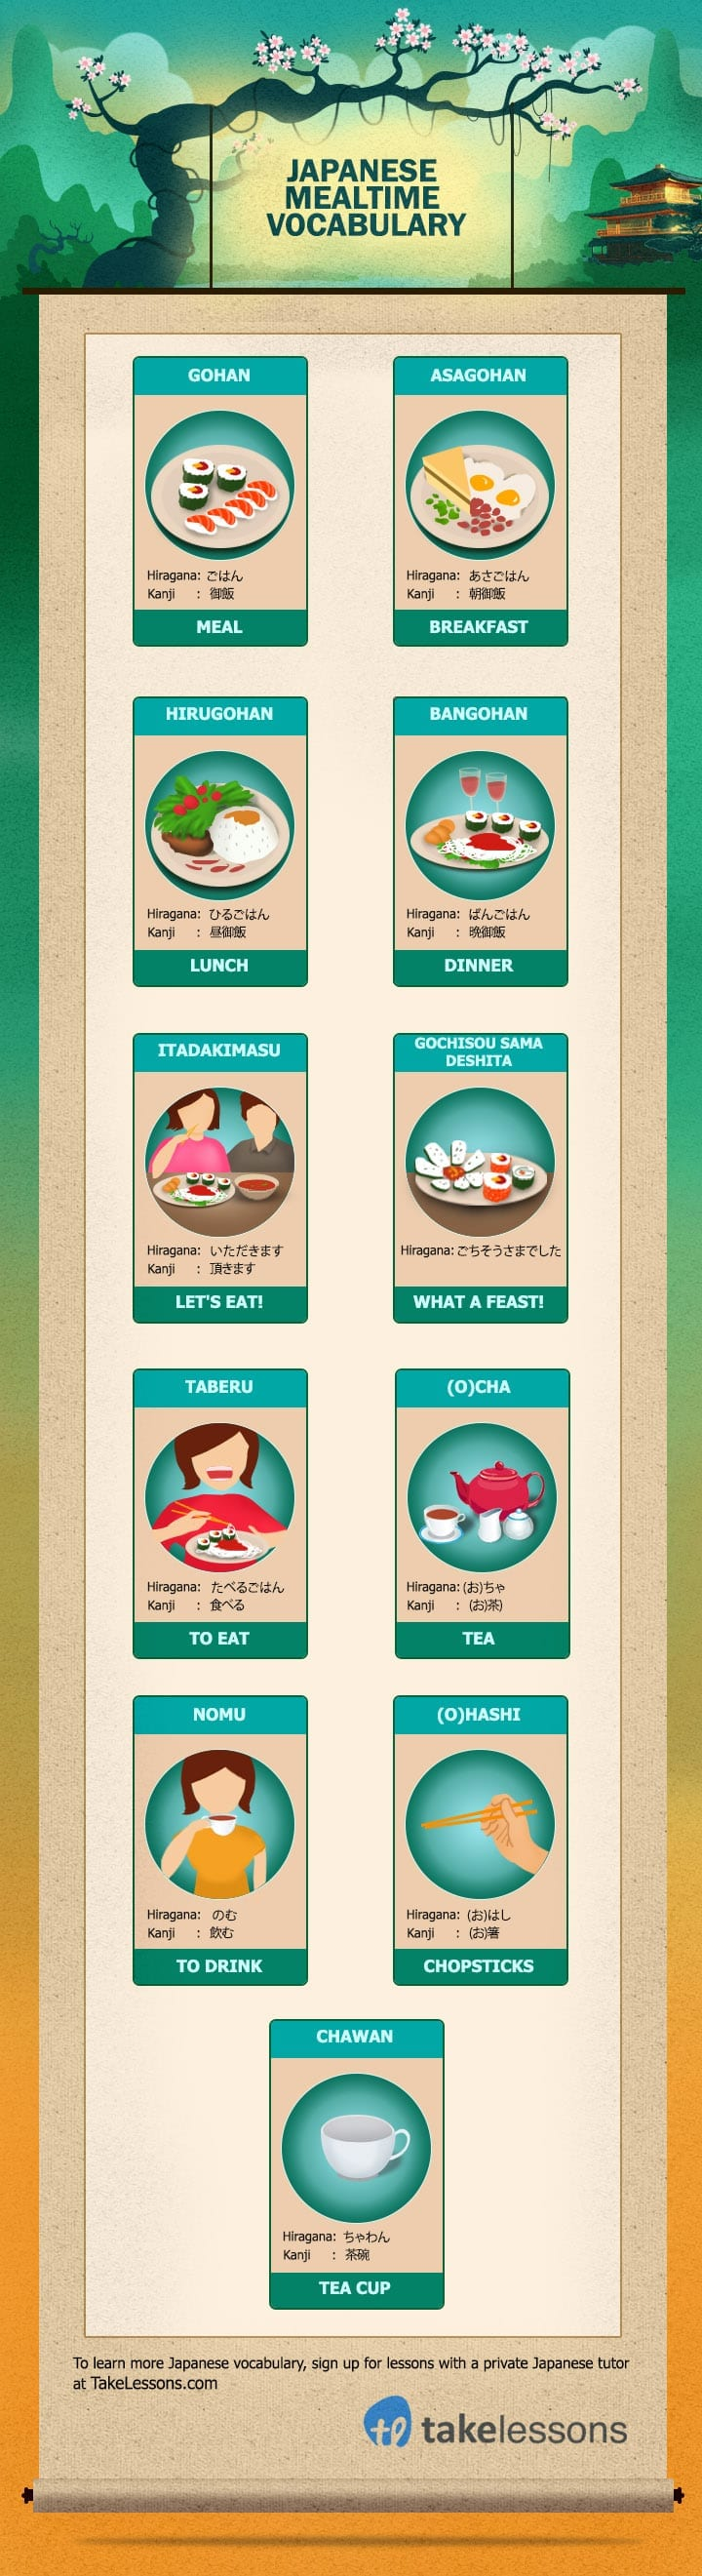 Japanese Meal Vocabulary: Let's eat breakfast, lunch, and dinner in Japanese